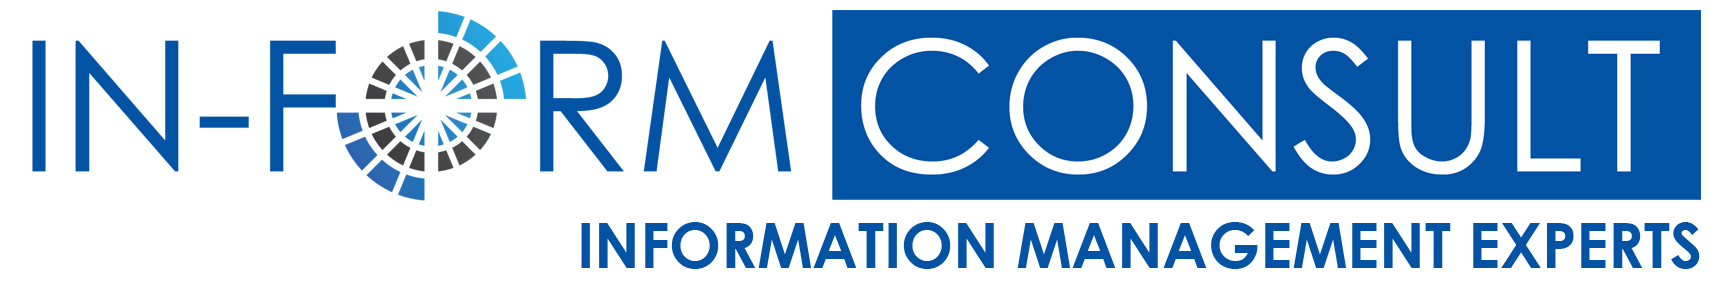 In-Form Consult Logo